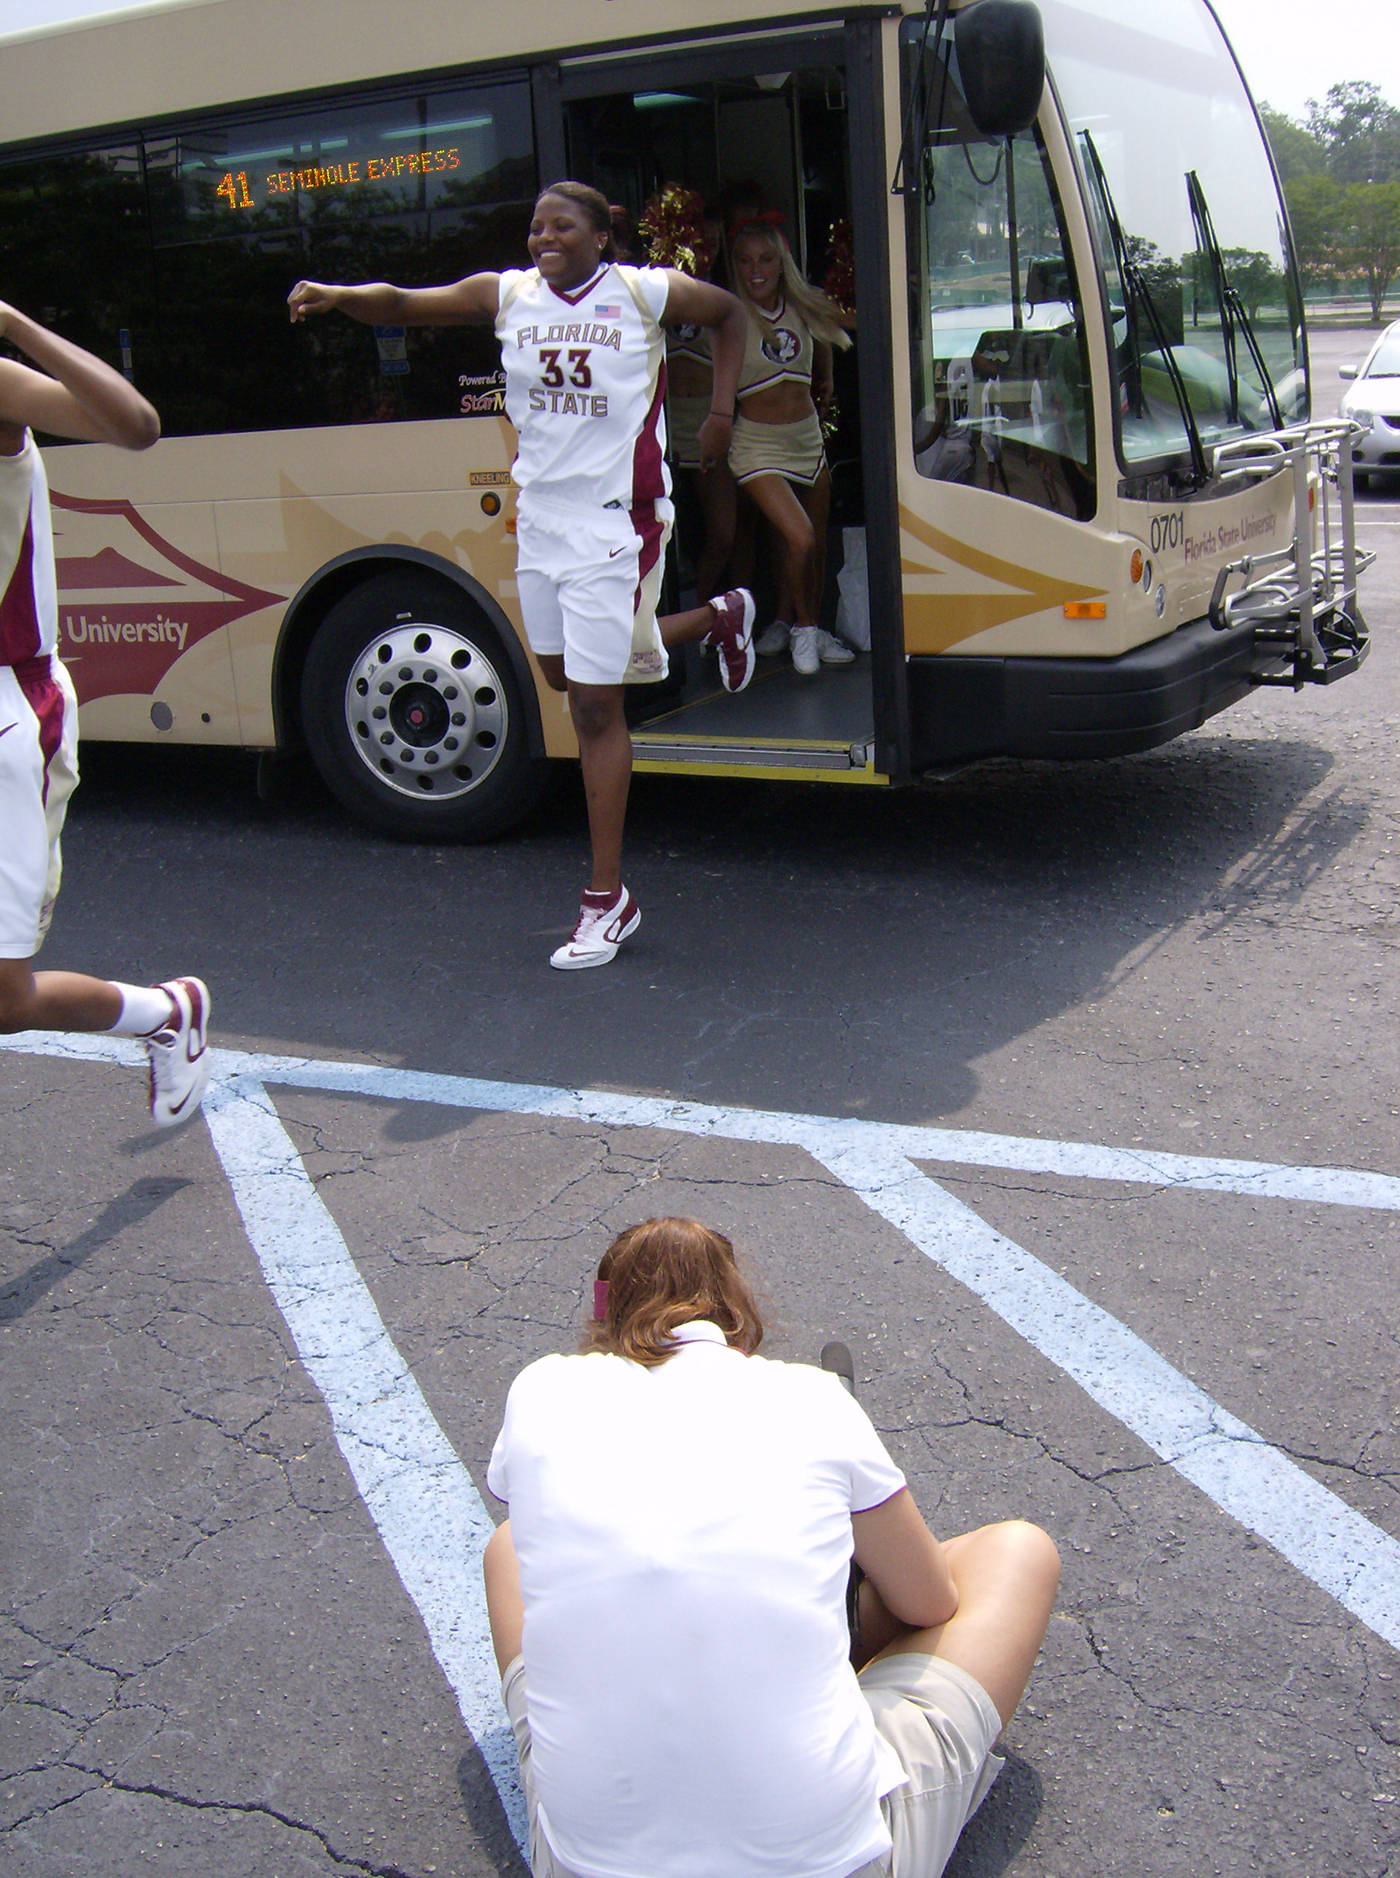 Britany Miller coming off the bus